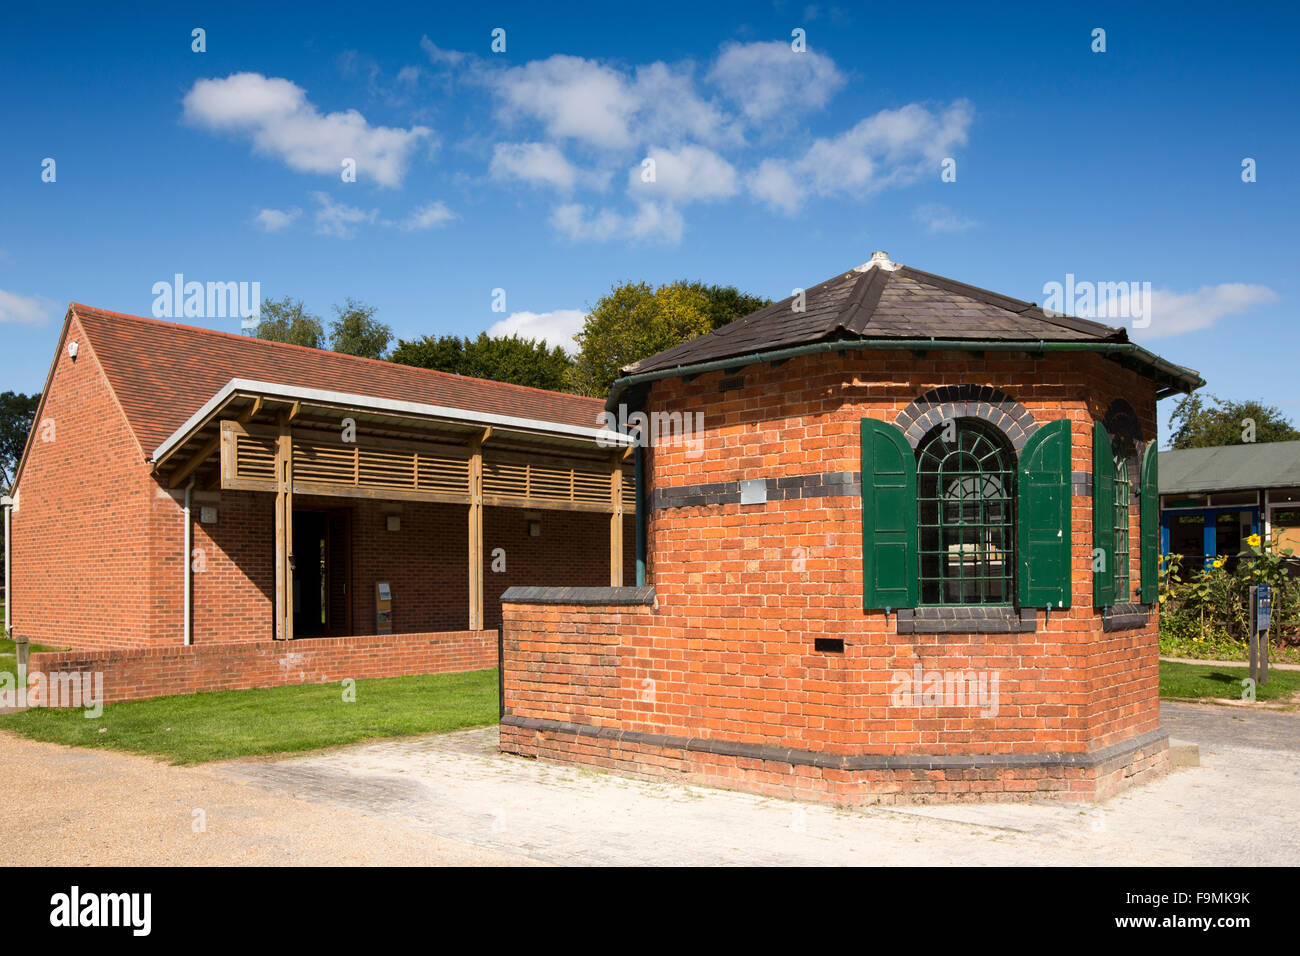 UK, England, Worcestershire, Bromsgrove, Avoncroft Museum, Counting House and exhibition hall - Stock Image